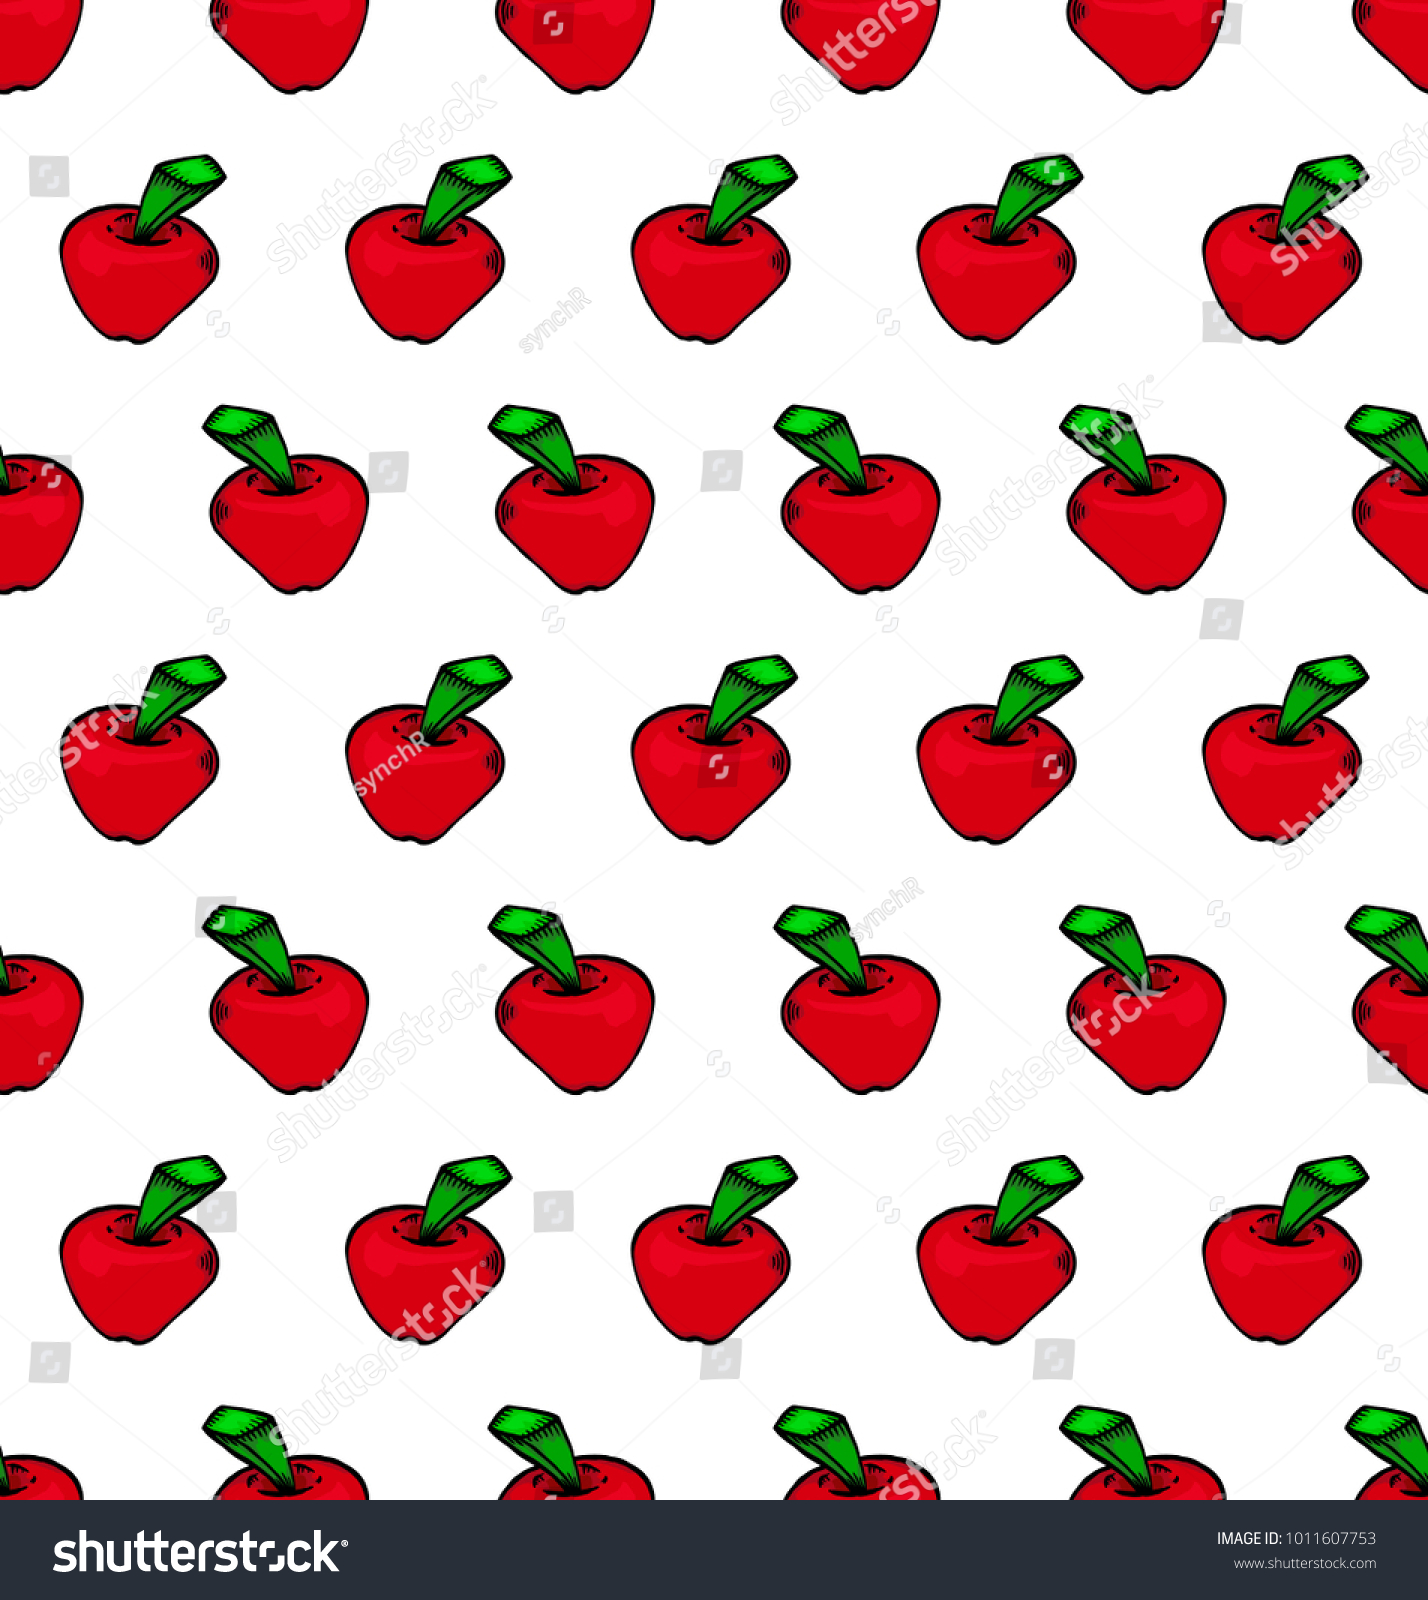 Beautiful Wallpaper Macbook Pattern - stock-vector-seamless-red-apple-pattern-background-wallpaper-texture-isolated-on-white-background-1011607753  Picture_782213.jpg